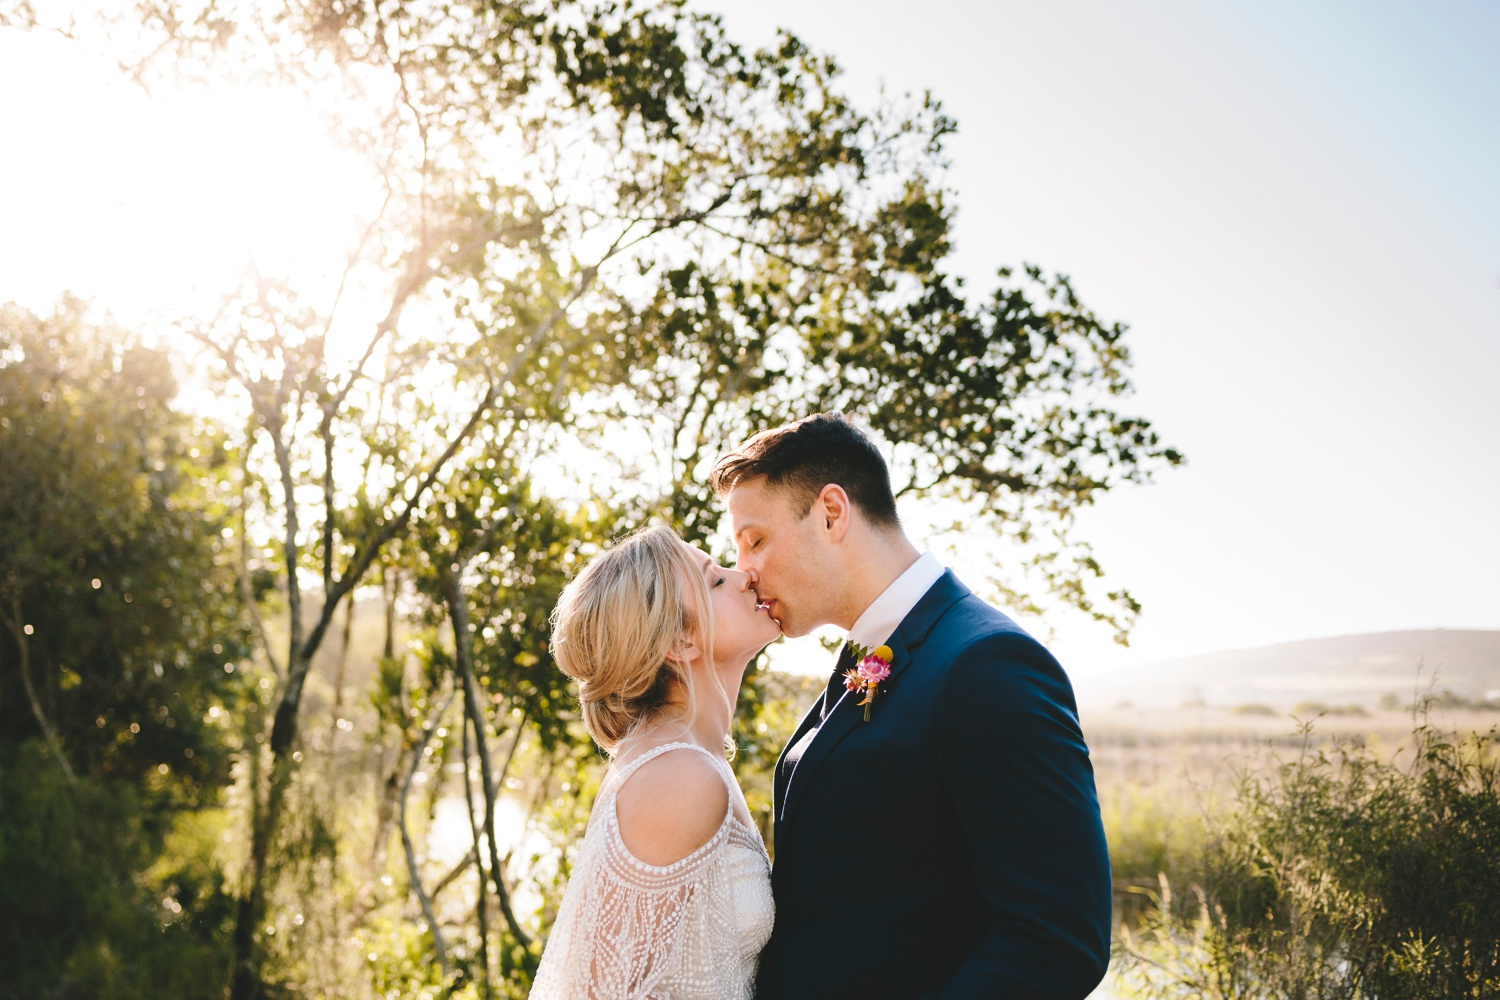 charlie_ray_photography_runaway_romance_elopement_emily_moon_plett_simple_boho_wedding_south_africa_bohemium_0075.jpg